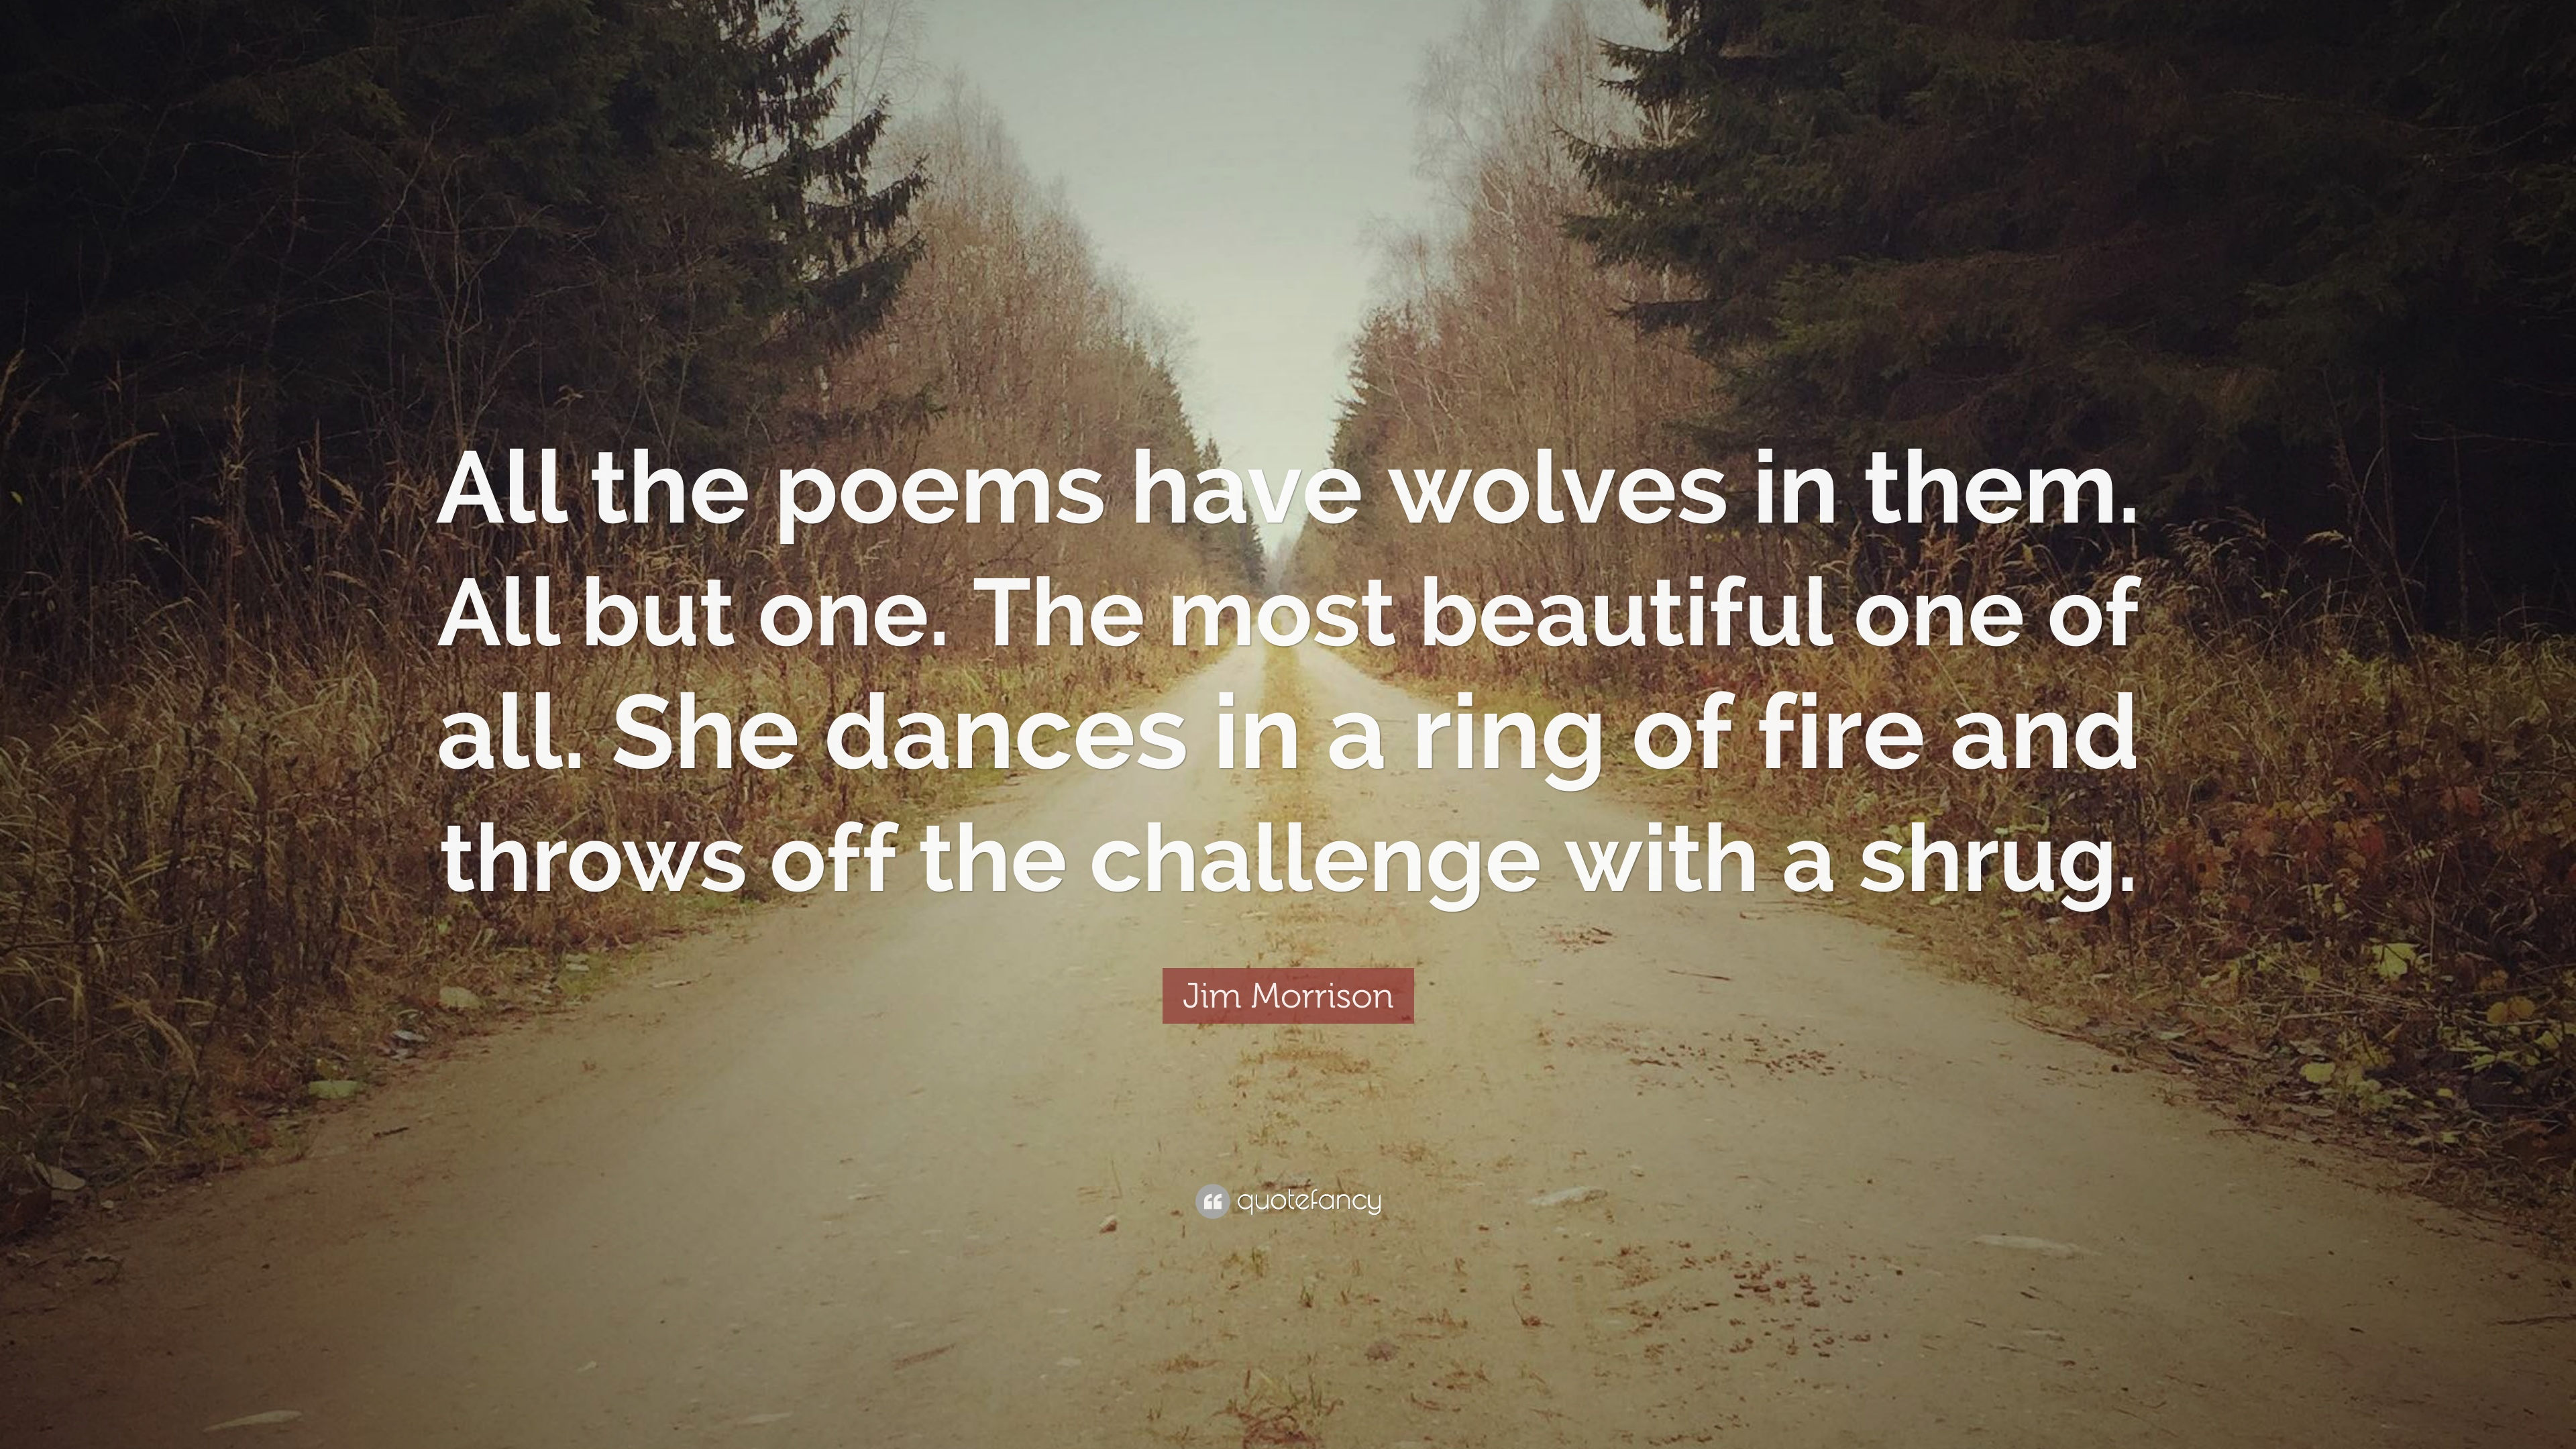 Beautiful One Jim Morrison Quote All The Poems Have Wolves In Them All But